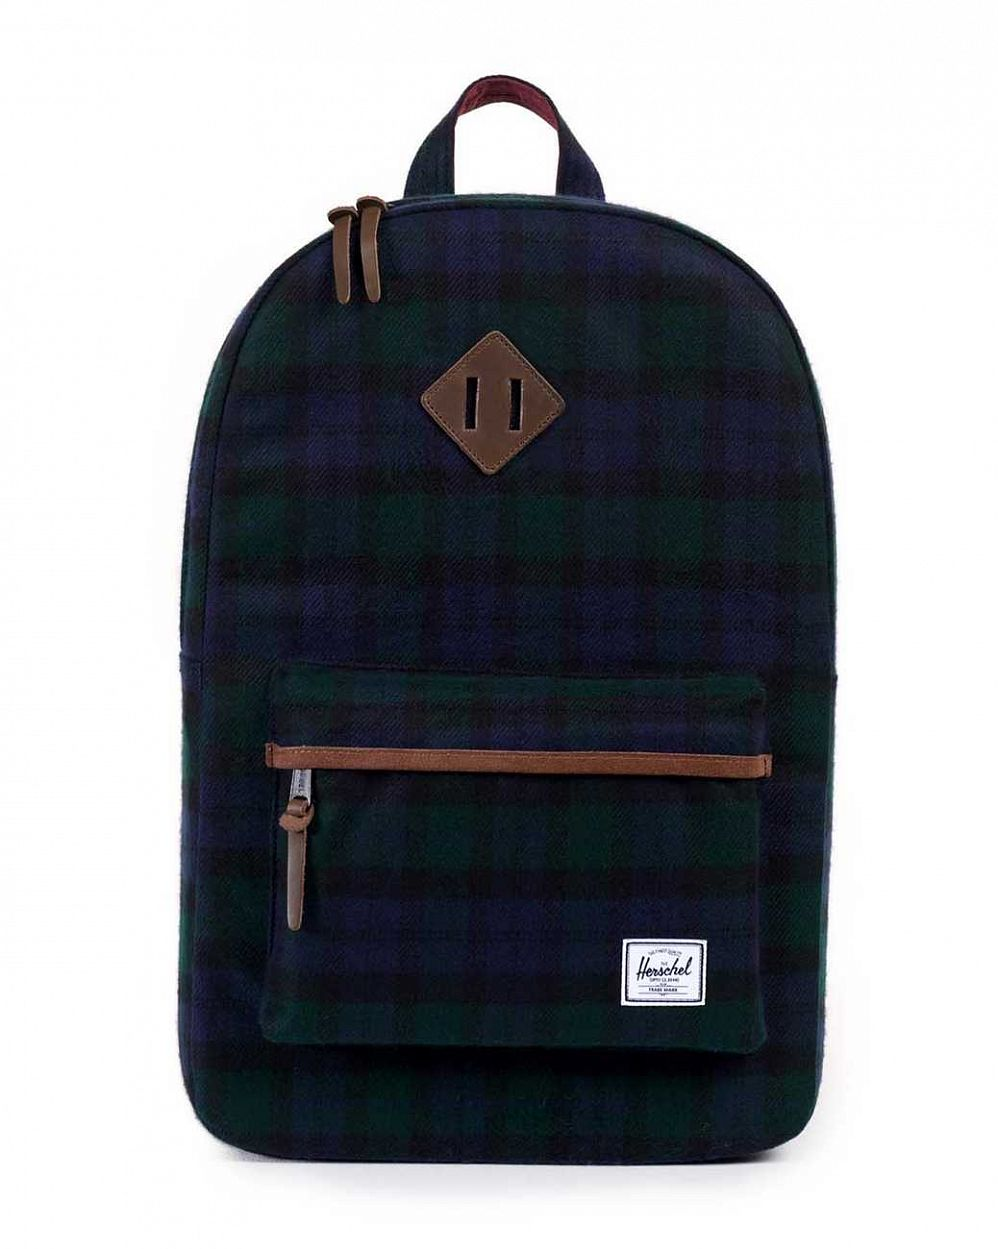 Рюкзак Herschel Heritage Select Black Watch Plaid отзывы